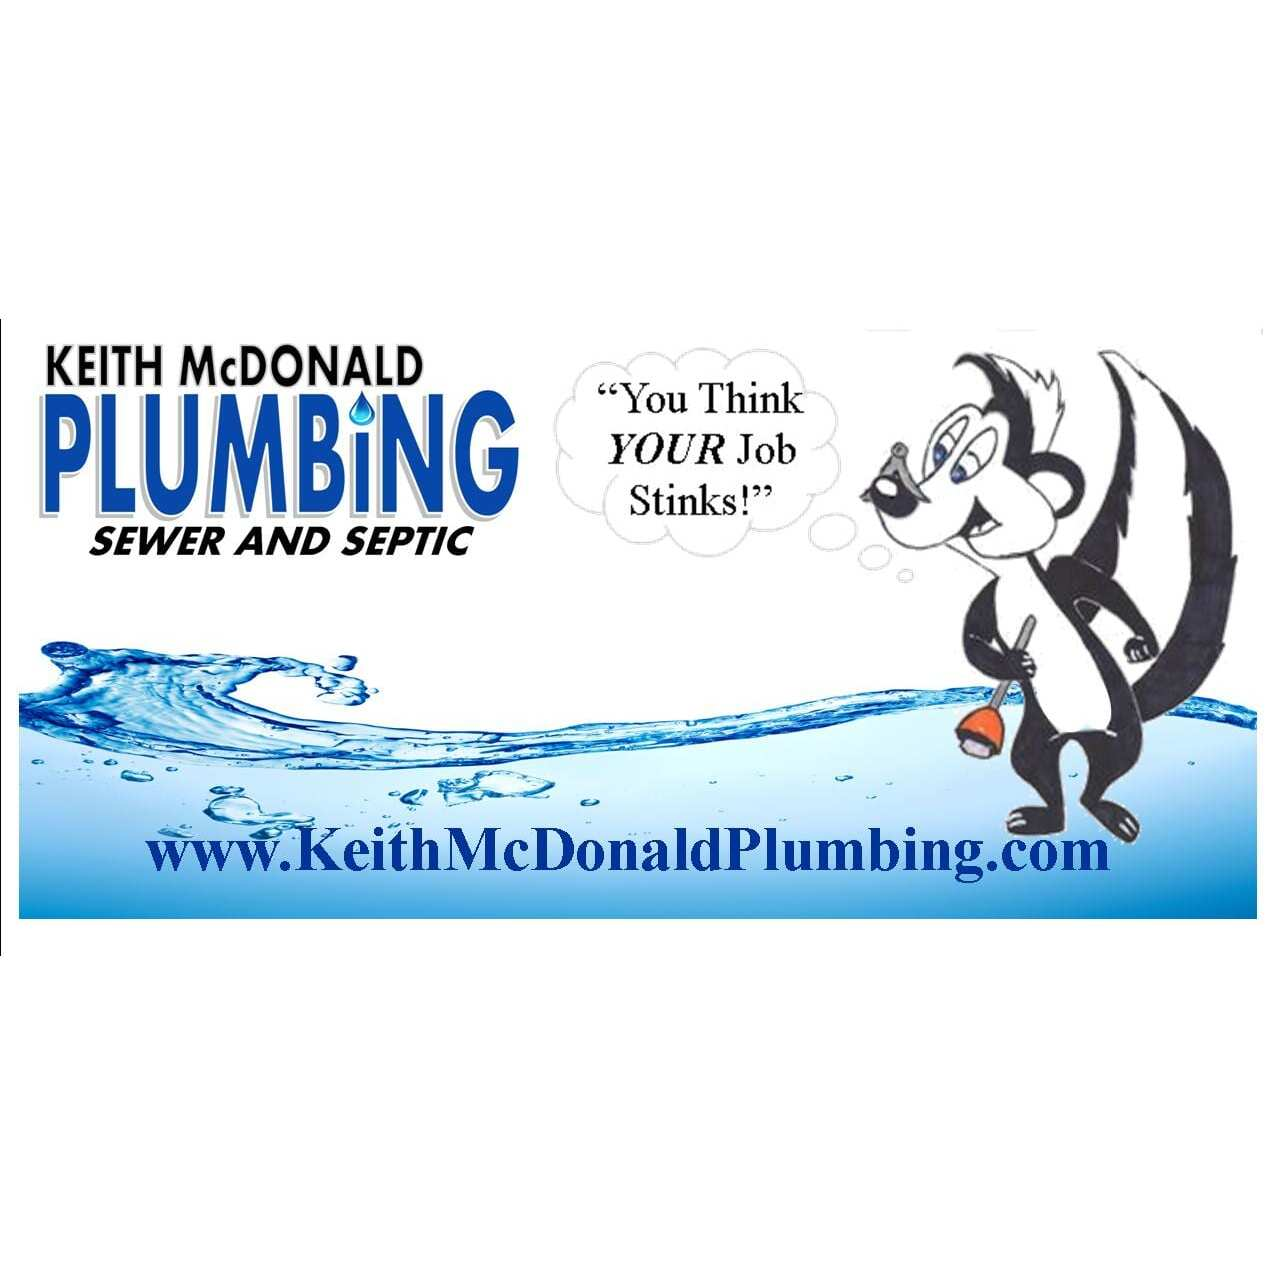 Keith McDonald Plumbing Sewer & Septic image 0